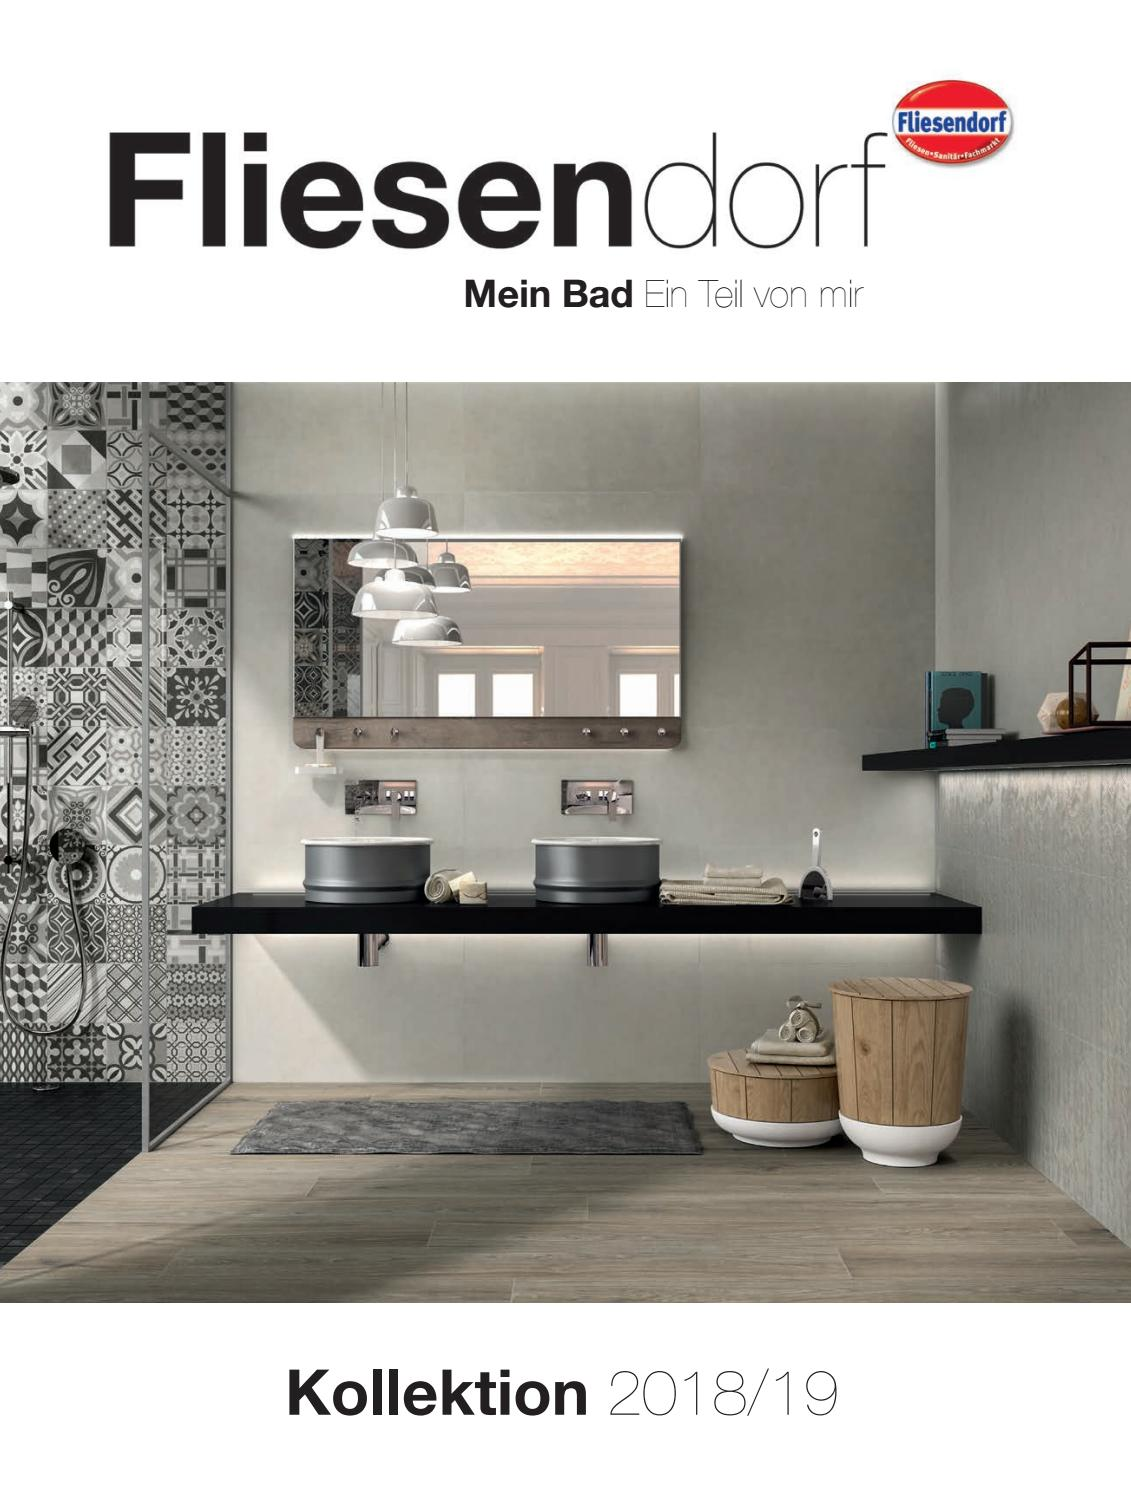 Terracotta Fliesen Moderne Möbel Fliesendorf Kollektion 2018 2019 By Fliesendorf At Issuu